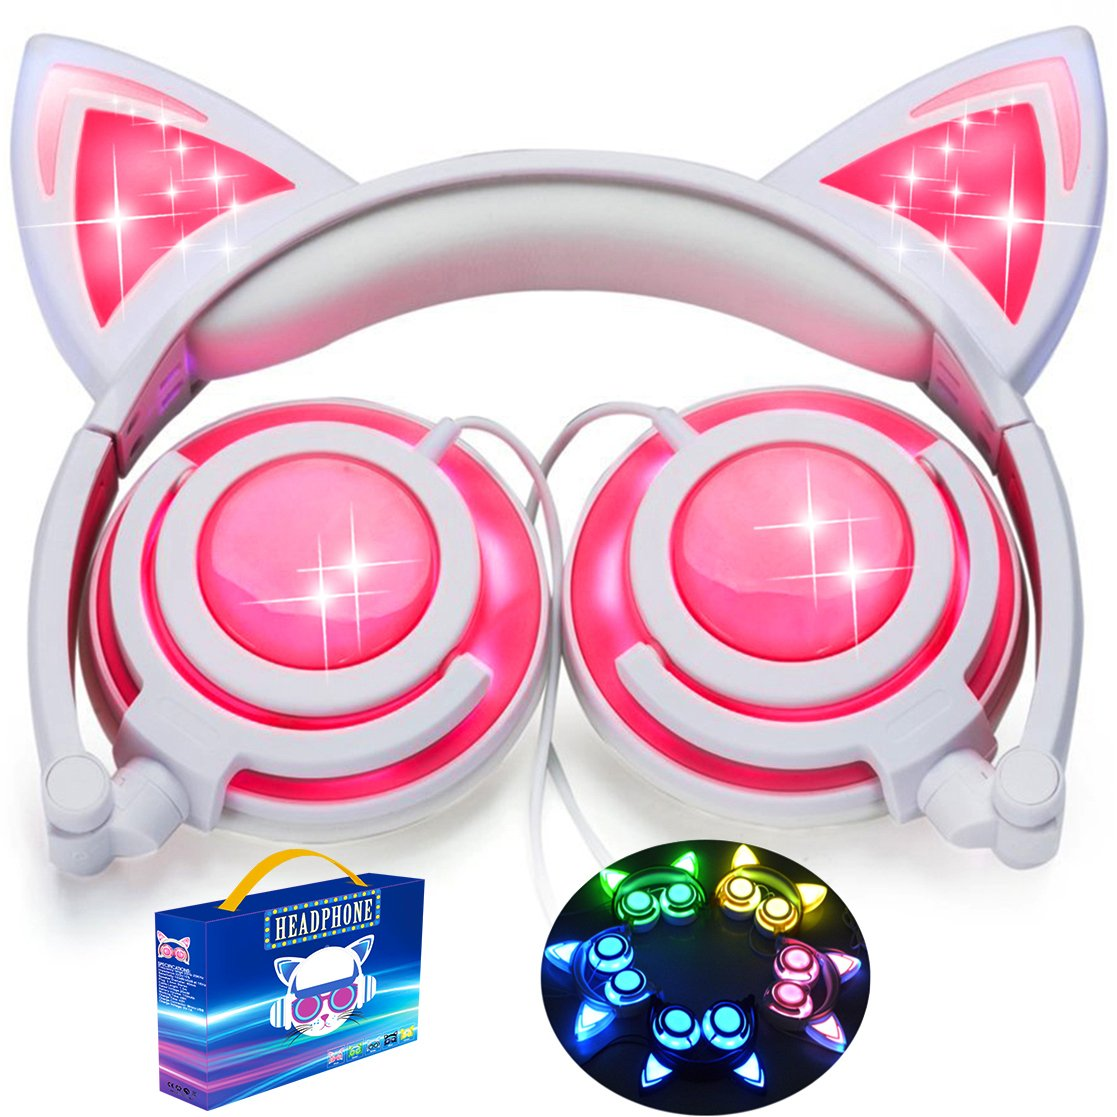 [Upgraded Version]Cat Ear Kids Headphones with LED Light 85dB Volume Limited iGeeKid Foldable Over/On Ear Headsets for Girls Boys Phone Tablet School Travel Outdoor Children Musical Device (001Pink)